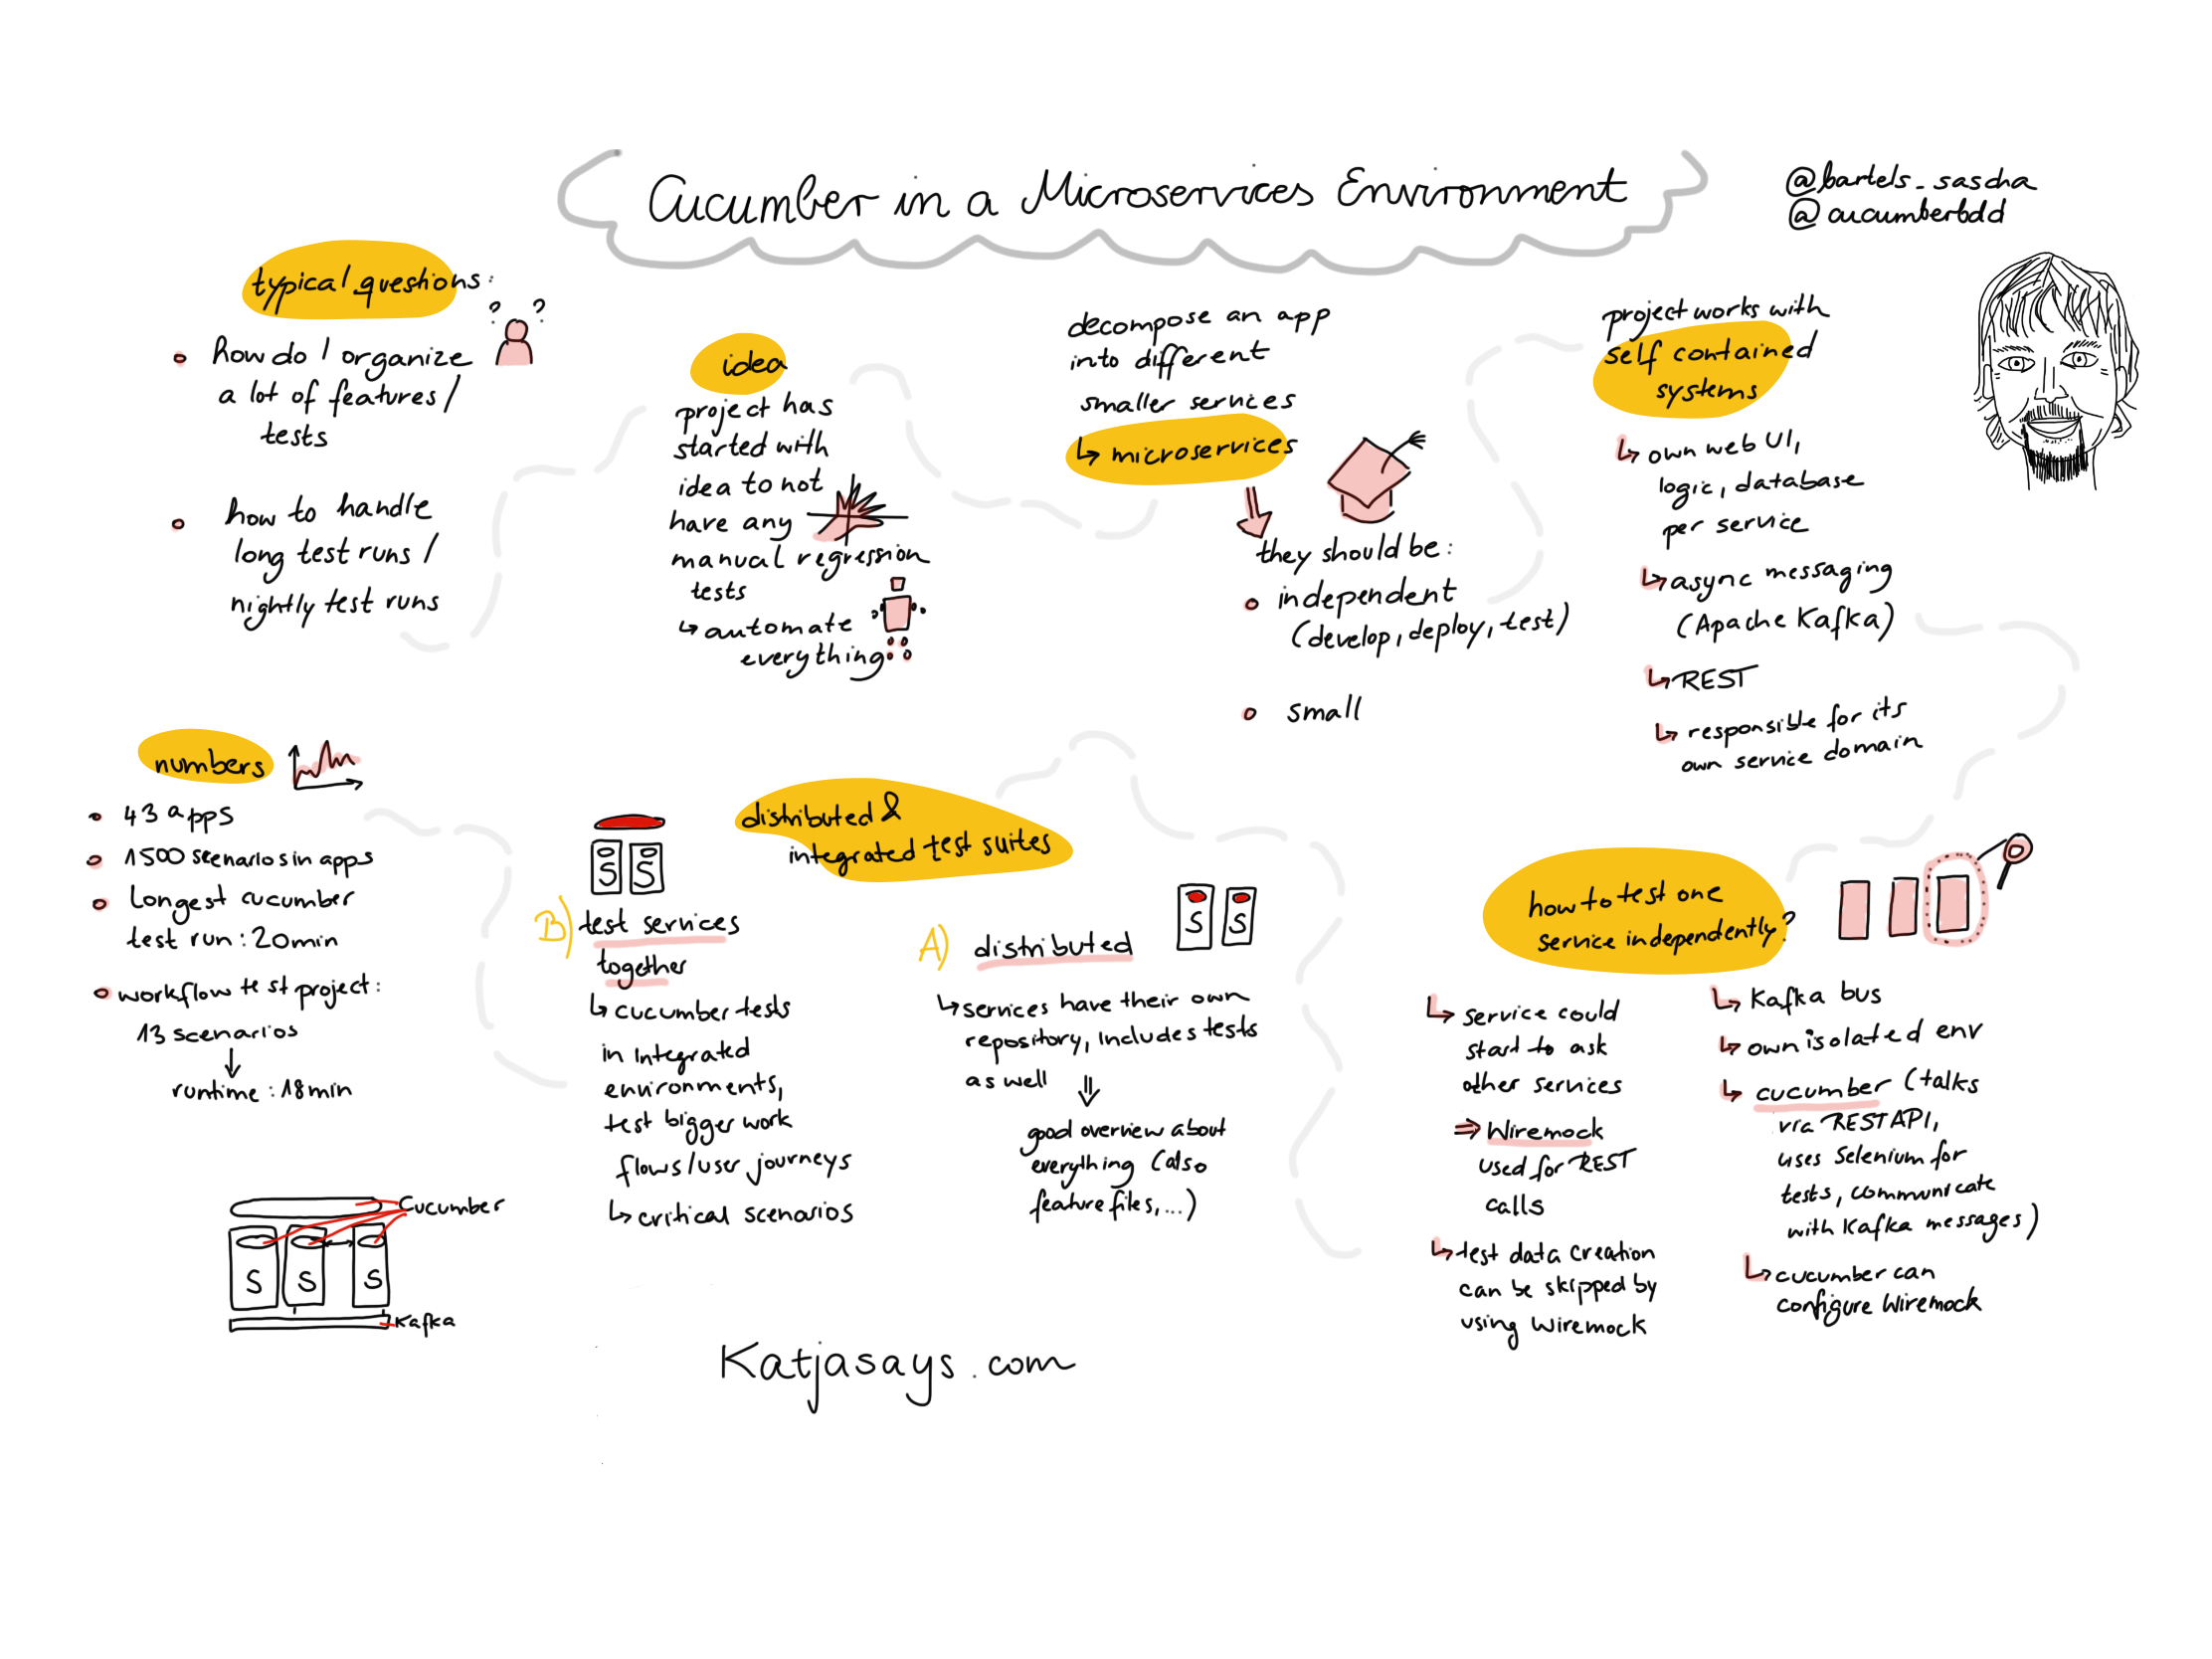 Cucumber in a Microservices Environment sketchnote